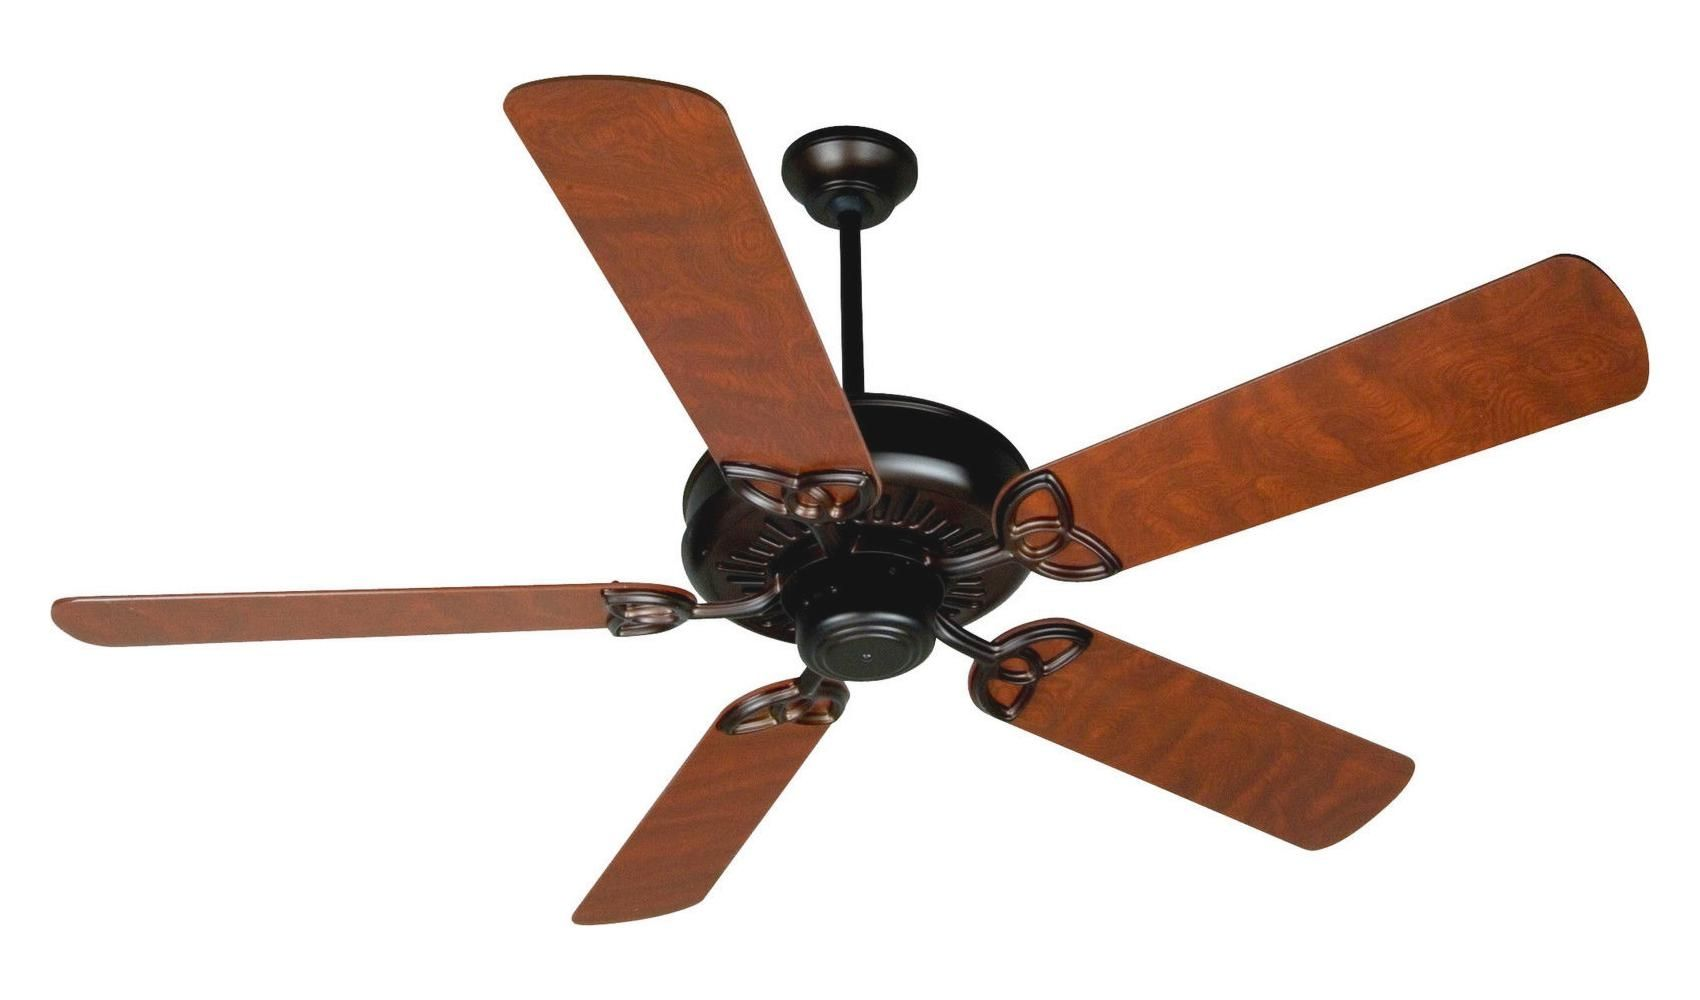 Search Quorum Ceiling Fan Installation Manual Views 19632 15072007 Fans And Delivery